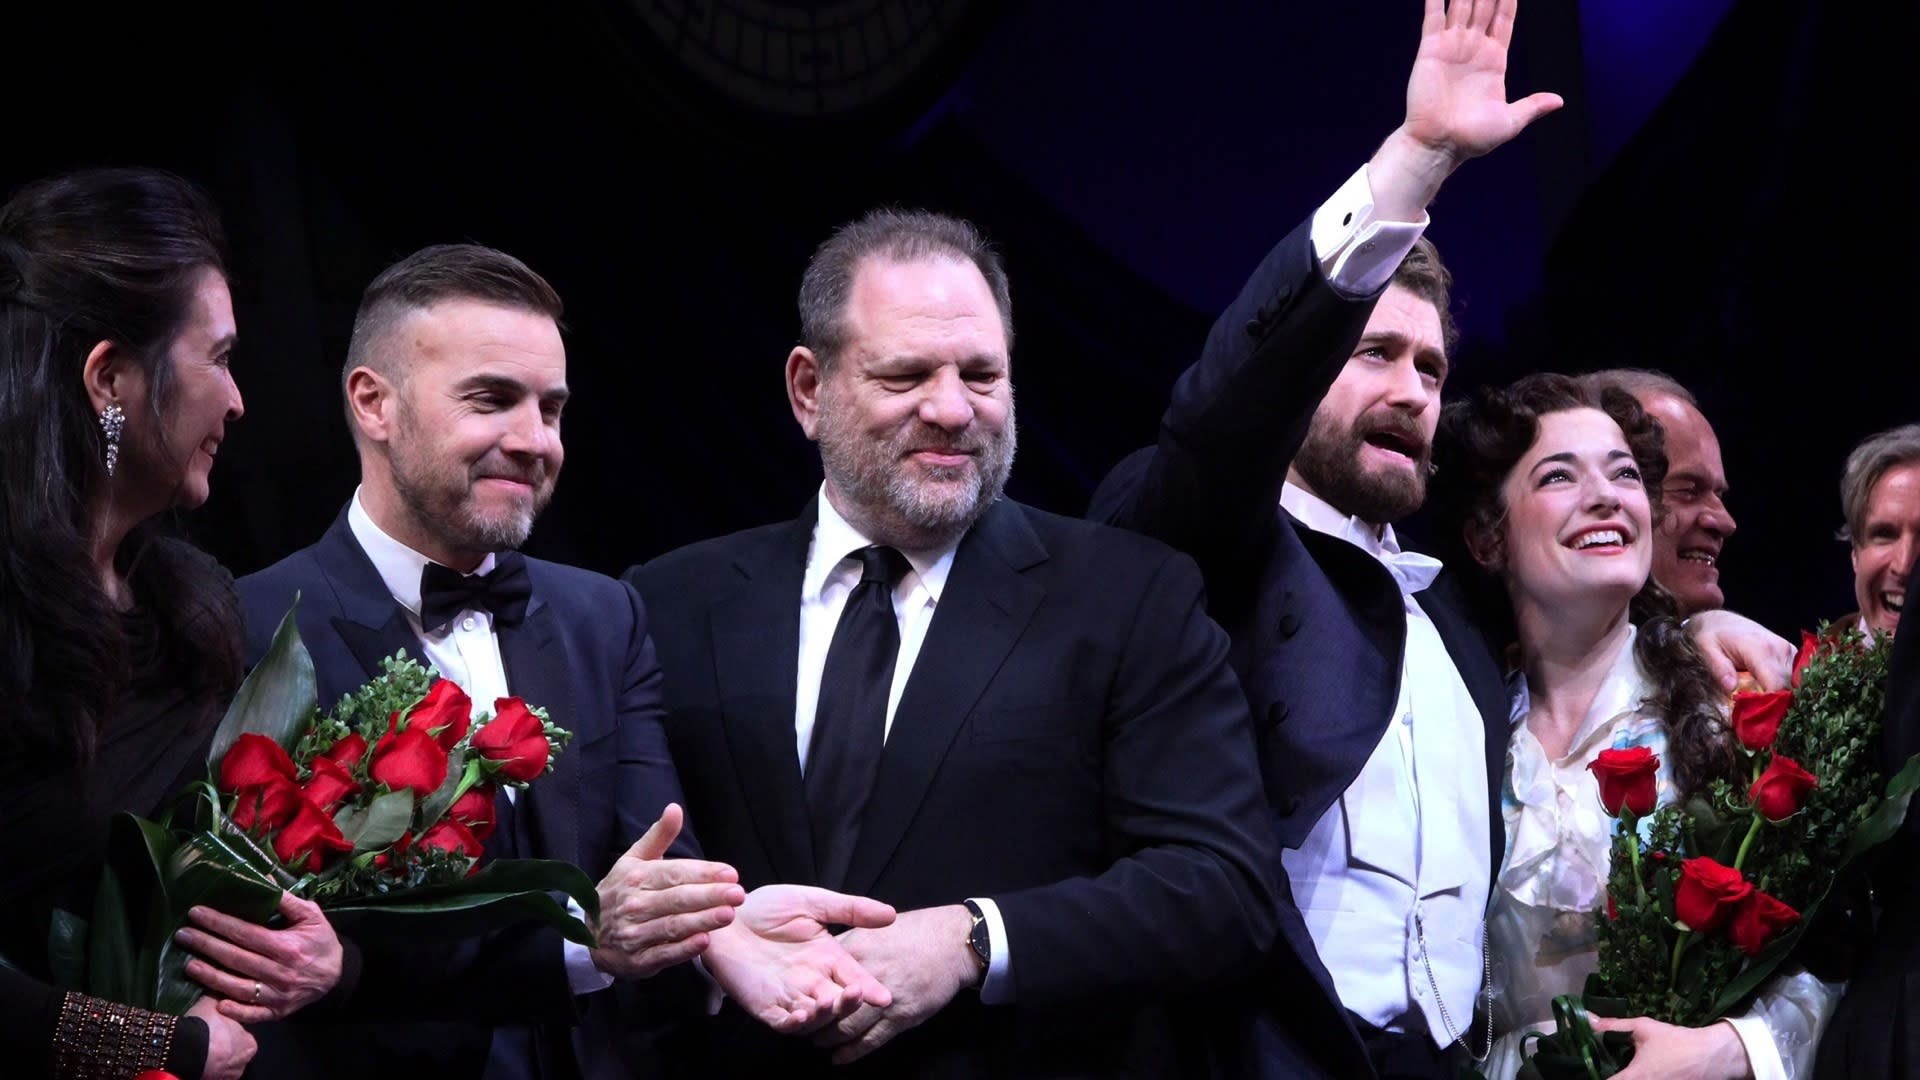 Big Softie Harvey Weinstein Opens 'Finding Neverland' on Broadway At Last